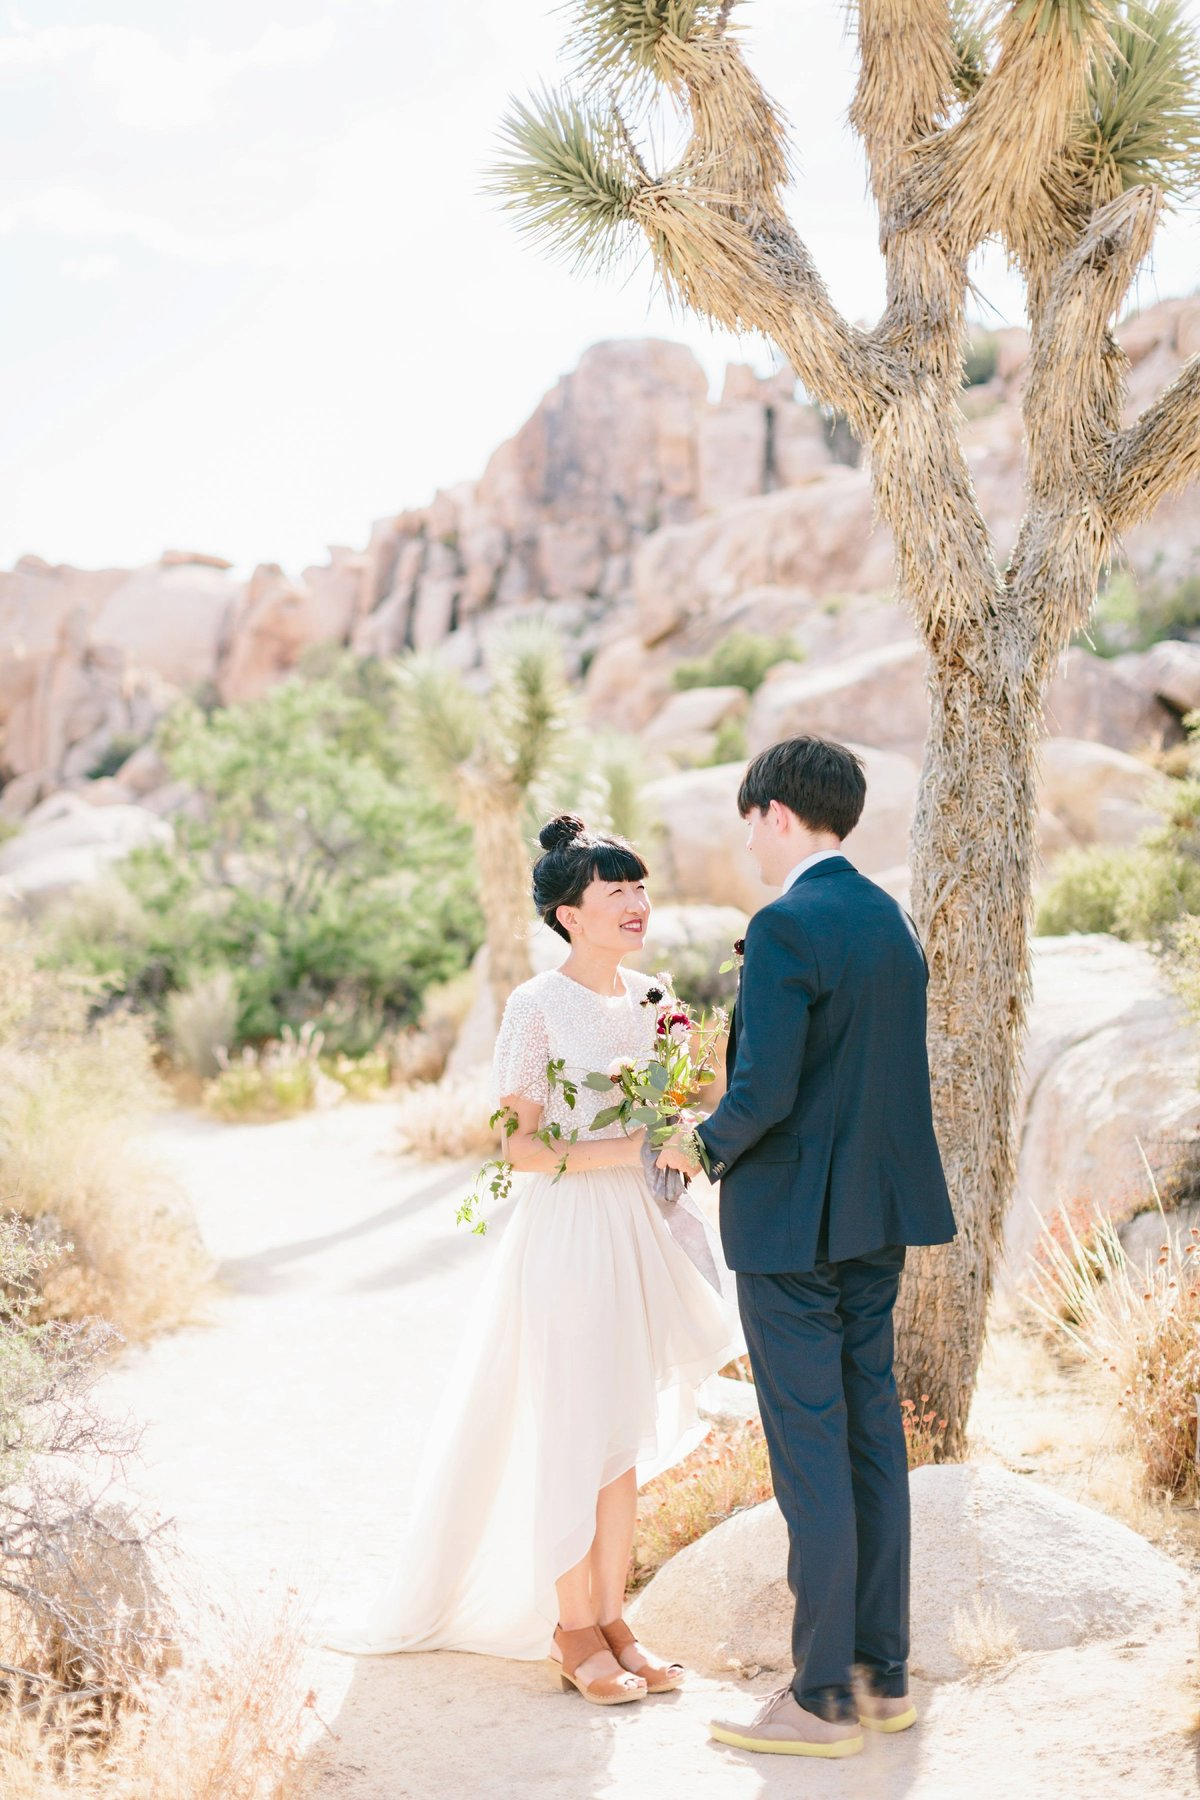 Best California Wedding Photographer-Jodee Debes Photography-345